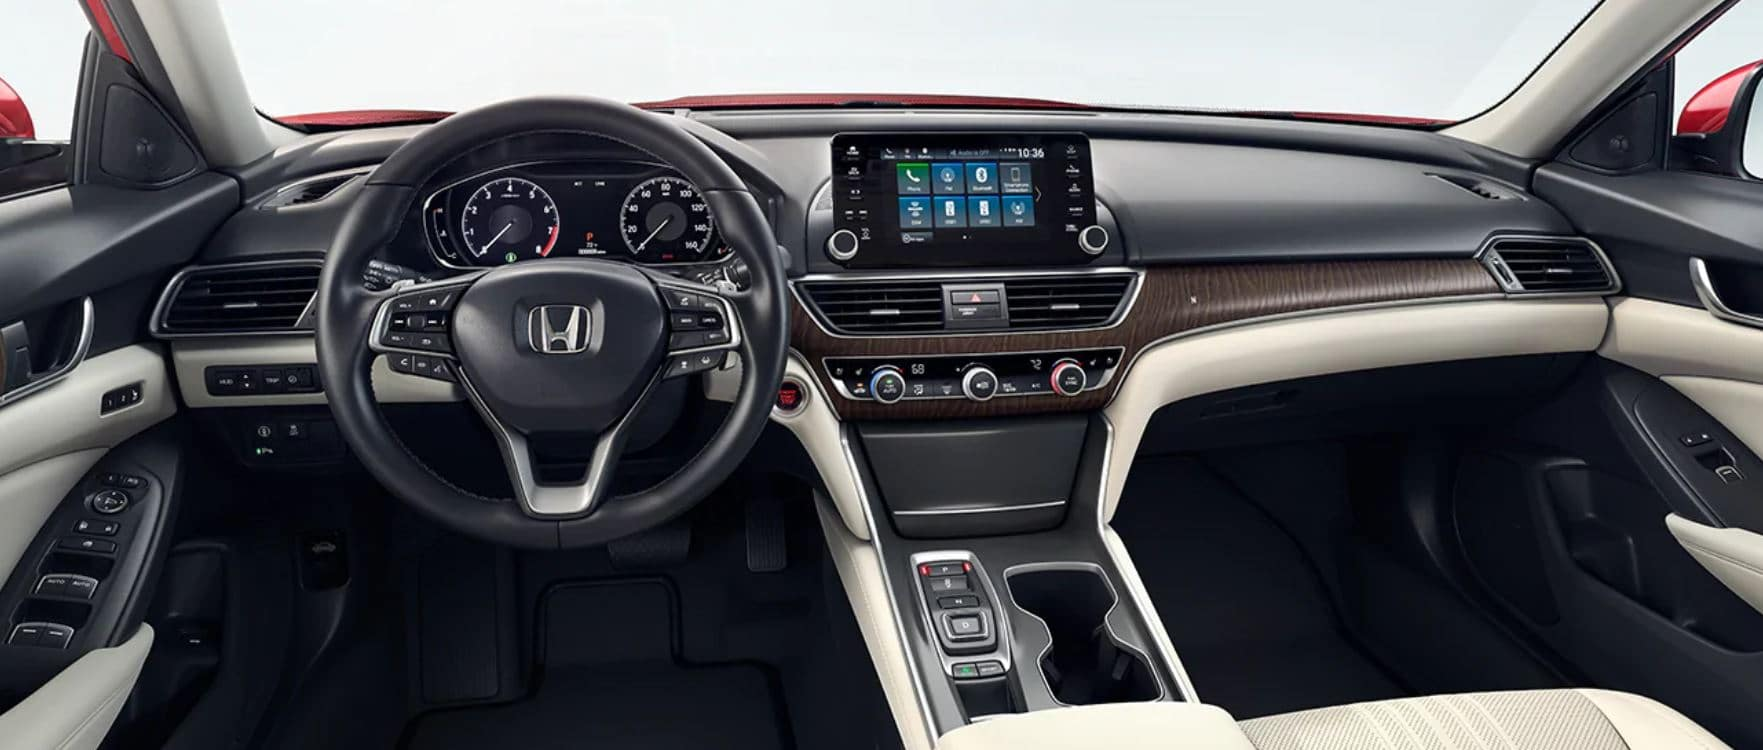 interior of a 2020 honda accord available now at schaller honda of new britain